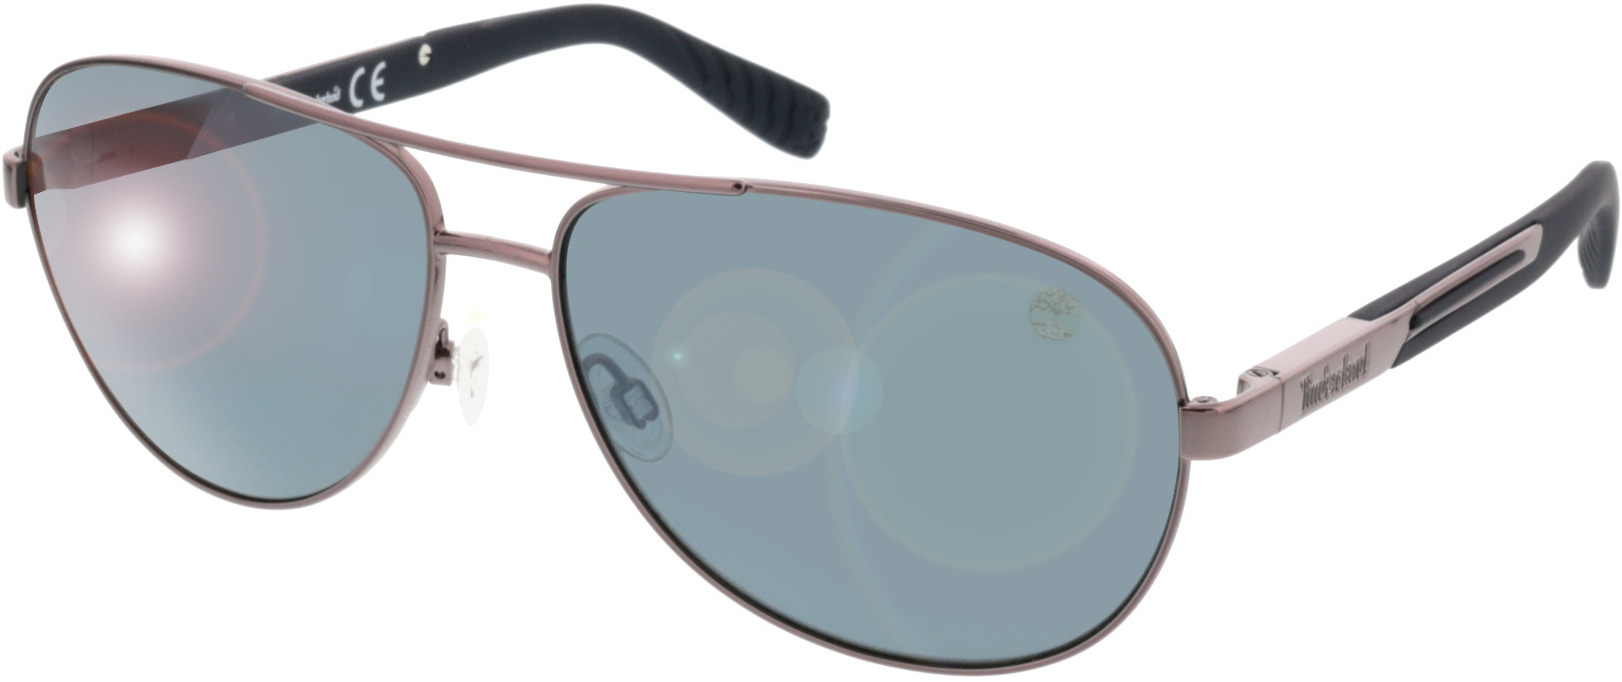 Picture of glasses model Timberland TB9058 08D brillant poudremetal 61 14 in angle 330